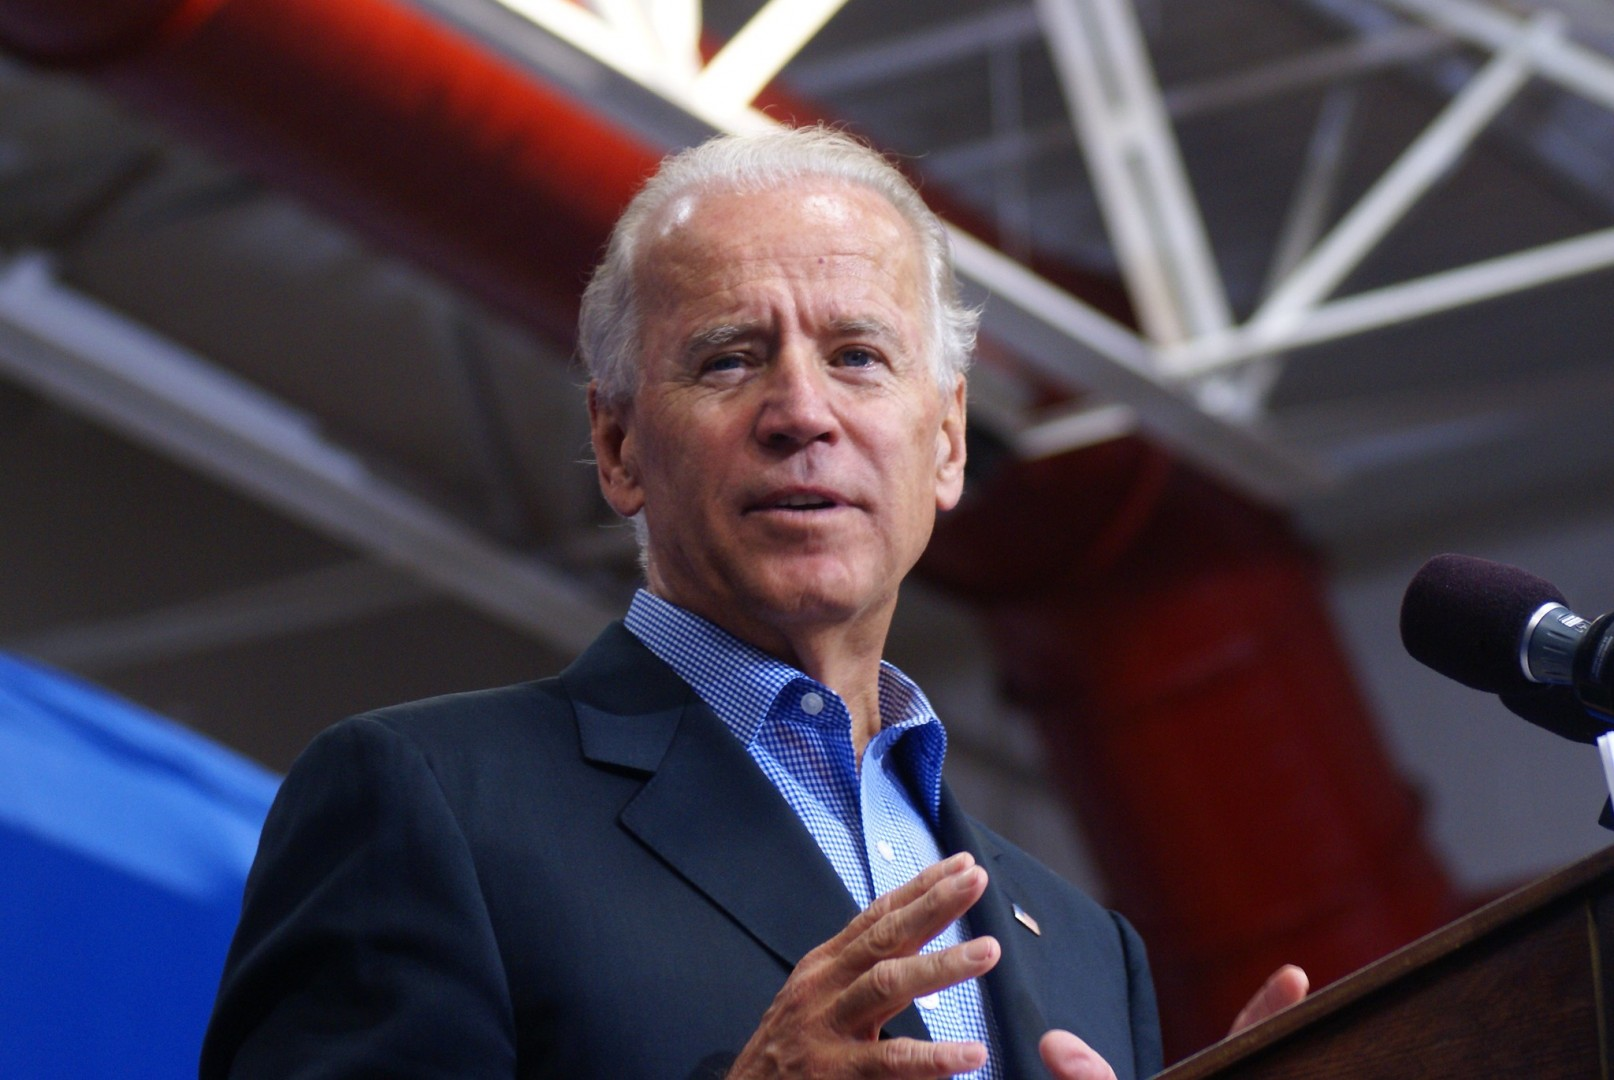 Former vice president Biden wants to invest US$400bn in clean energy and climate research (Image credit: Marc Nozell / Flickr)